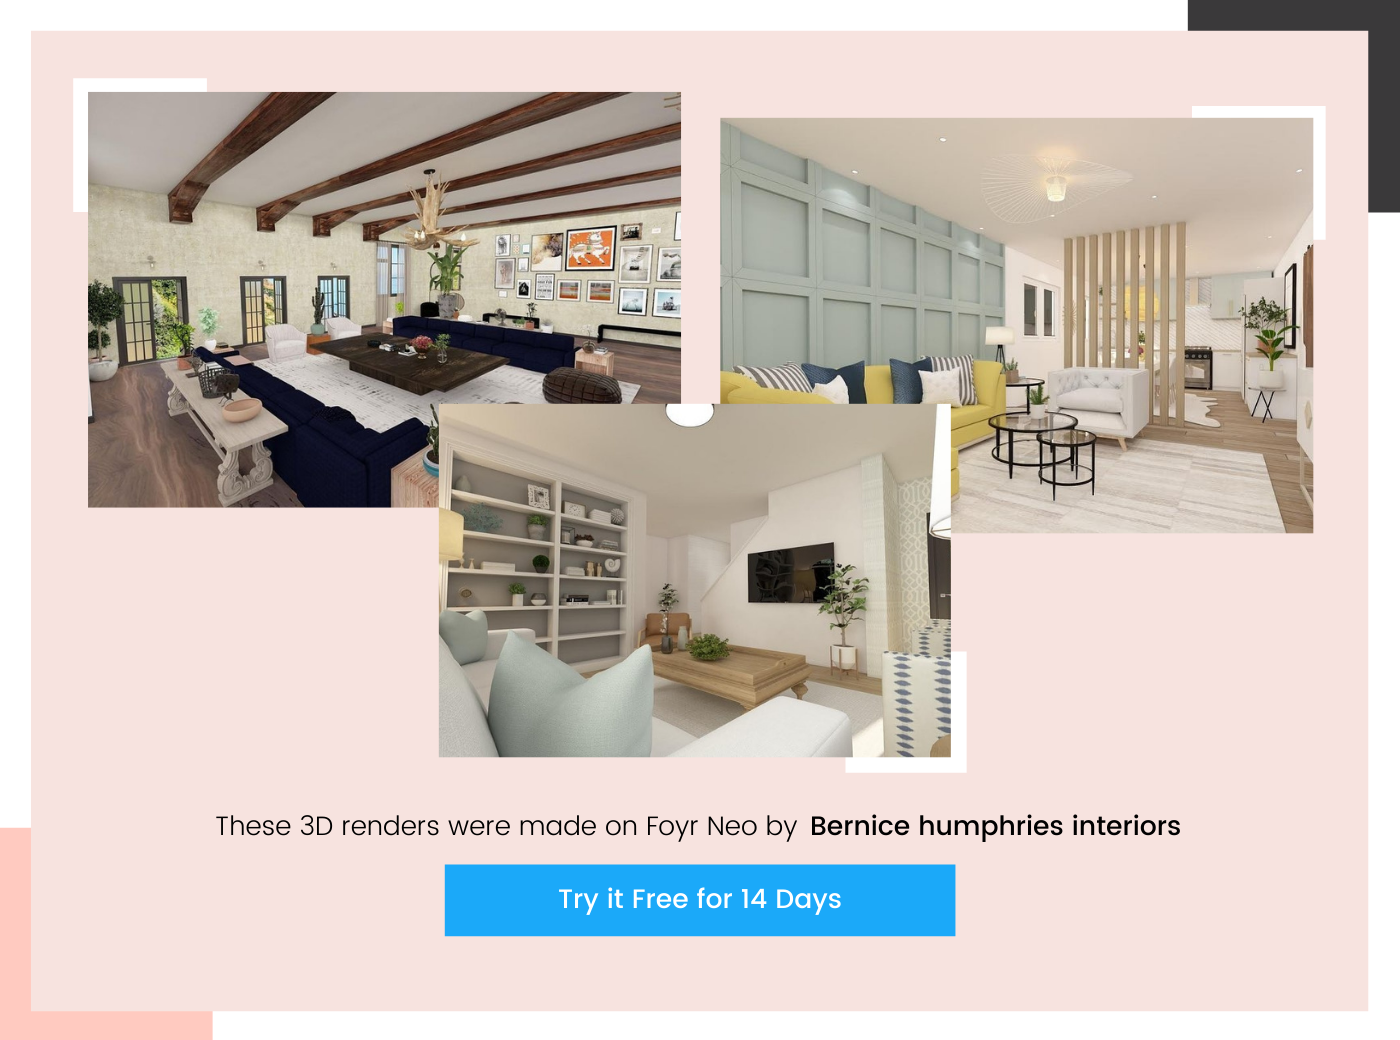 home design by Bernice humphries